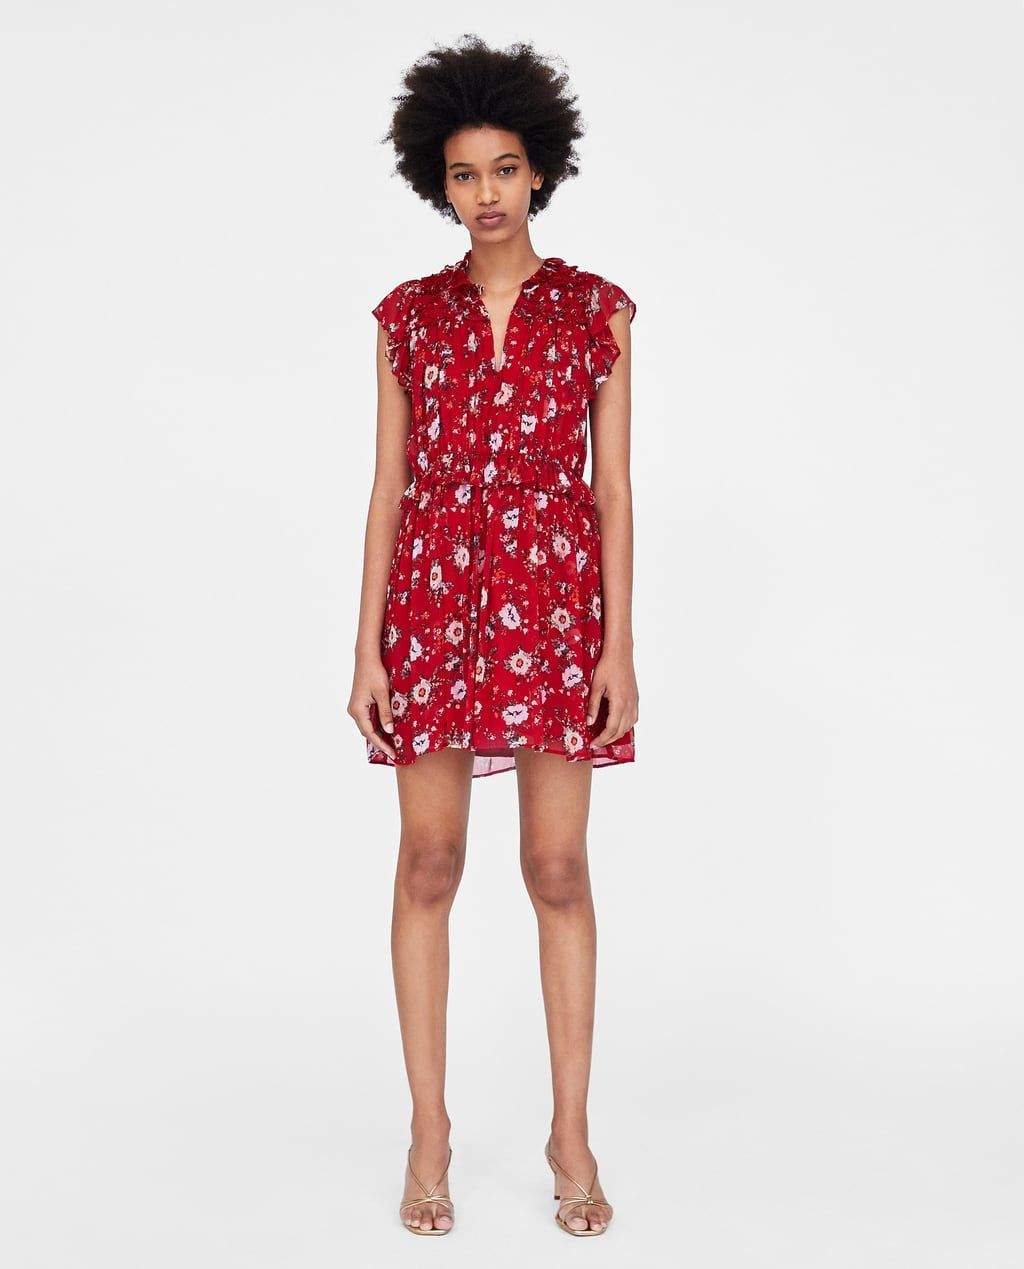 344b0194 Image 1 of RUFFLED FLORAL PRINT DRESS from Zara | Fashun Hunni ...